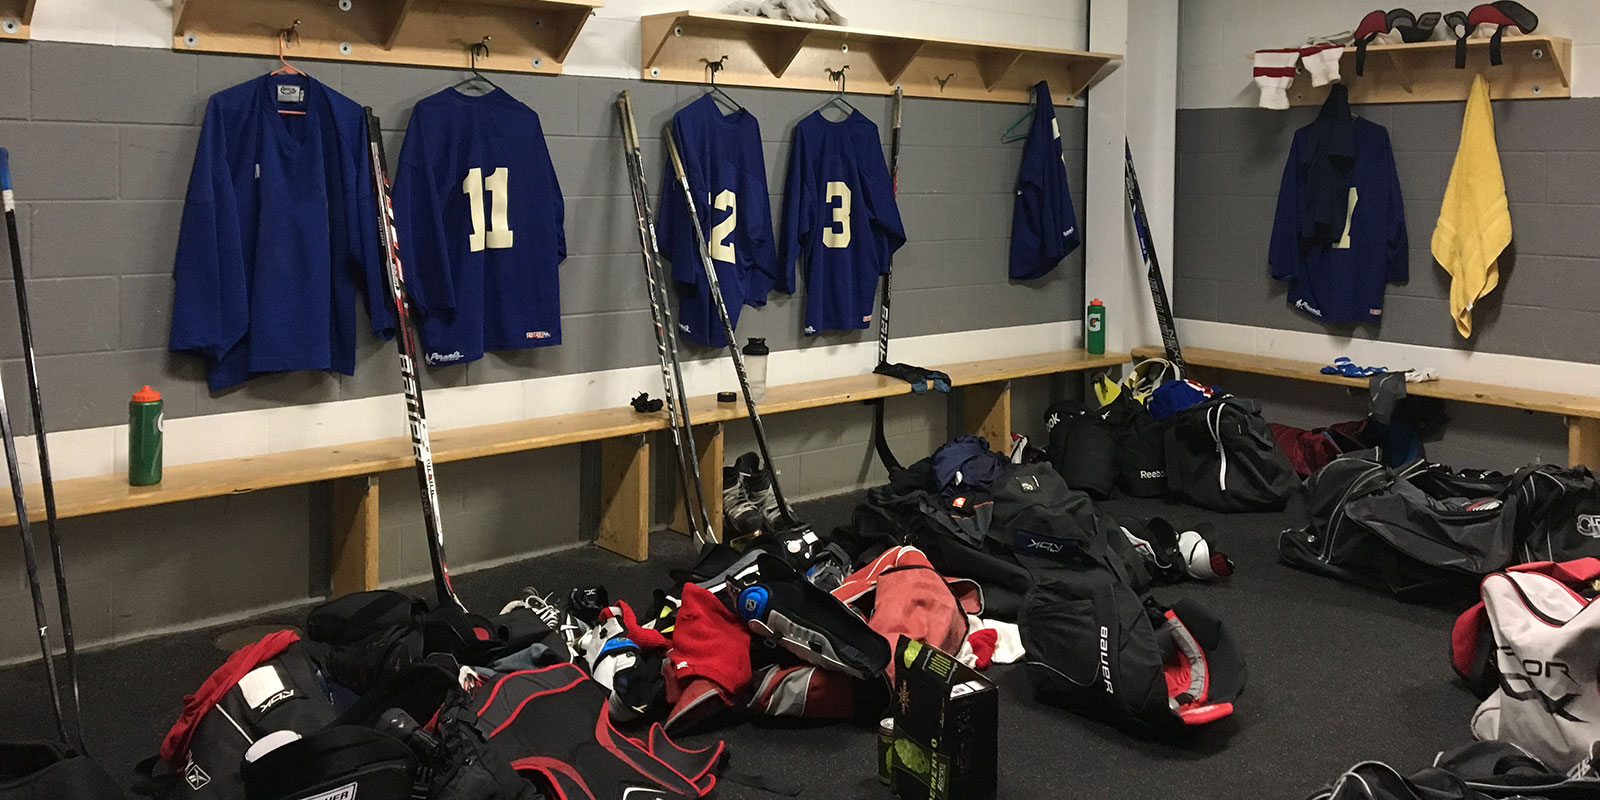 Hockey Equipment - The Beer League Tribune